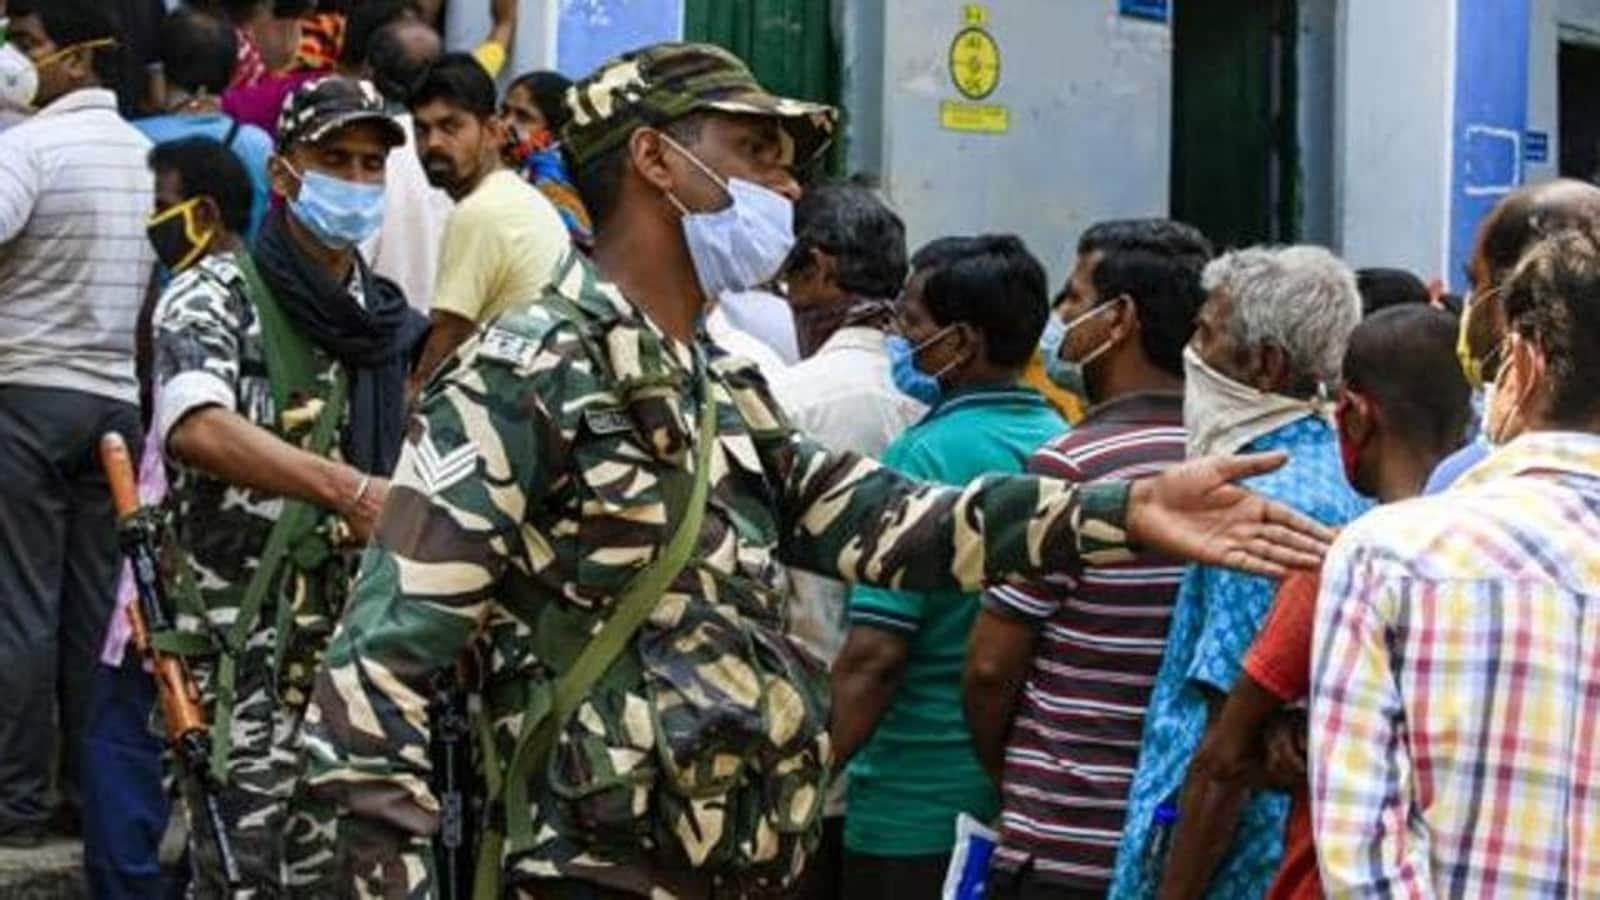 EC to deploy 80 companies of central forces for Bengal bypolls on Oct 30: Report